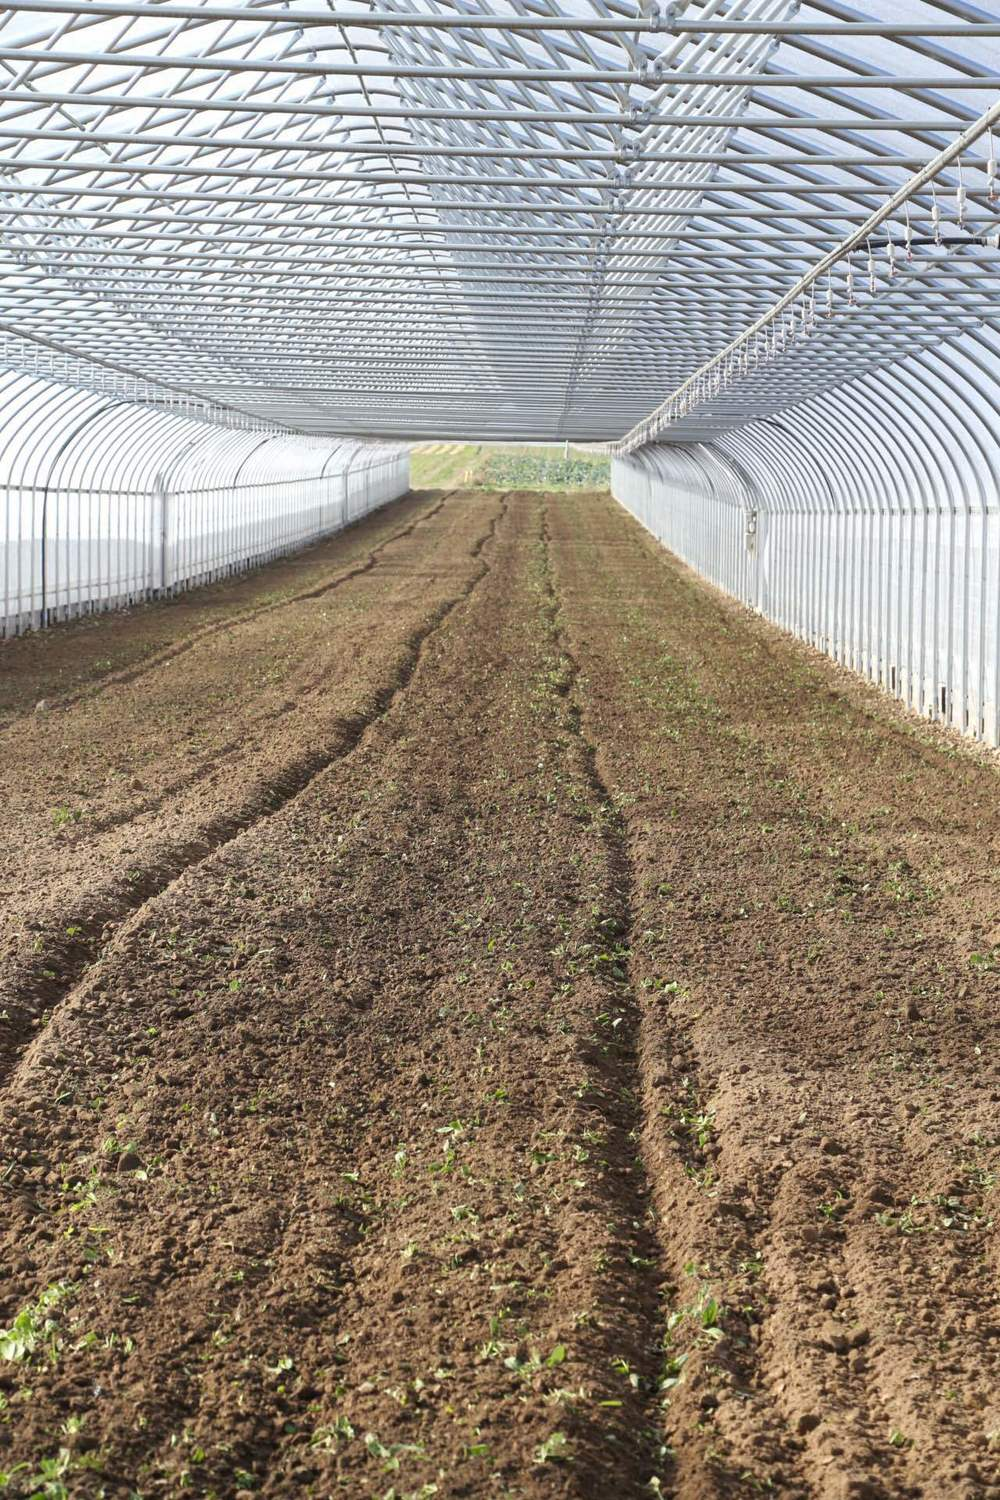 One of the 34'x600' greenhouses at Spiral Path, freshly tilled.